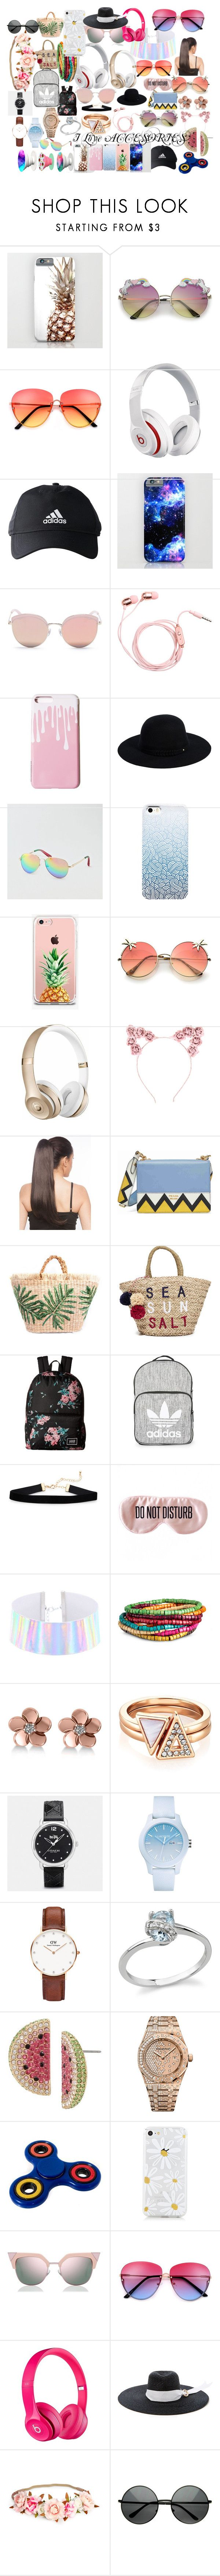 """""""ACCSESORIES"""" by andieok on Polyvore featuring Beats by Dr. Dre, adidas, Stephane + Christian, Siggi, American Eagle Outfitters, The Casery, Hot Topic, Prada, Sundry and Vans"""